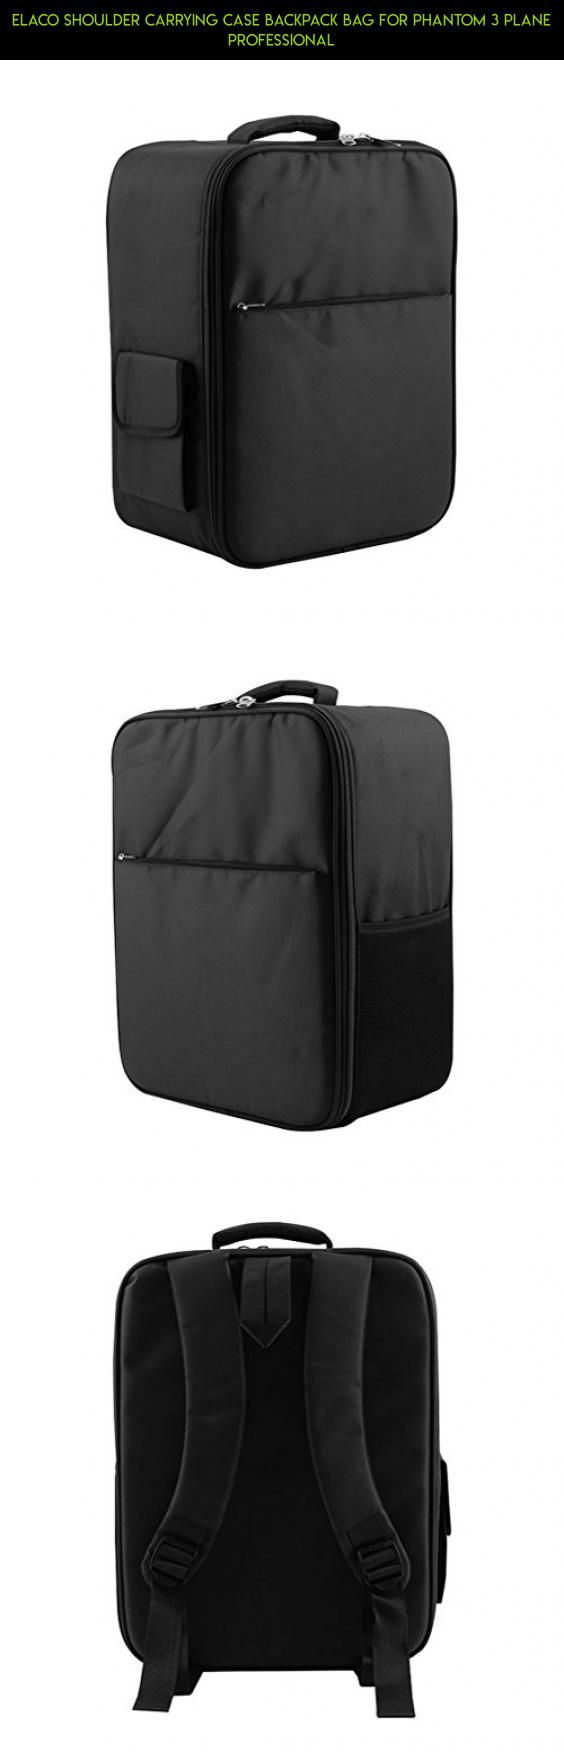 Elaco Shoulder Carrying Case Backpack Bag For Phantom 3 Plane Professional #gadgets #racing #parts #350 #tech #fpv #shopping #3 #dji #camera #kit #standard #products #plans #phantom #technology #drone